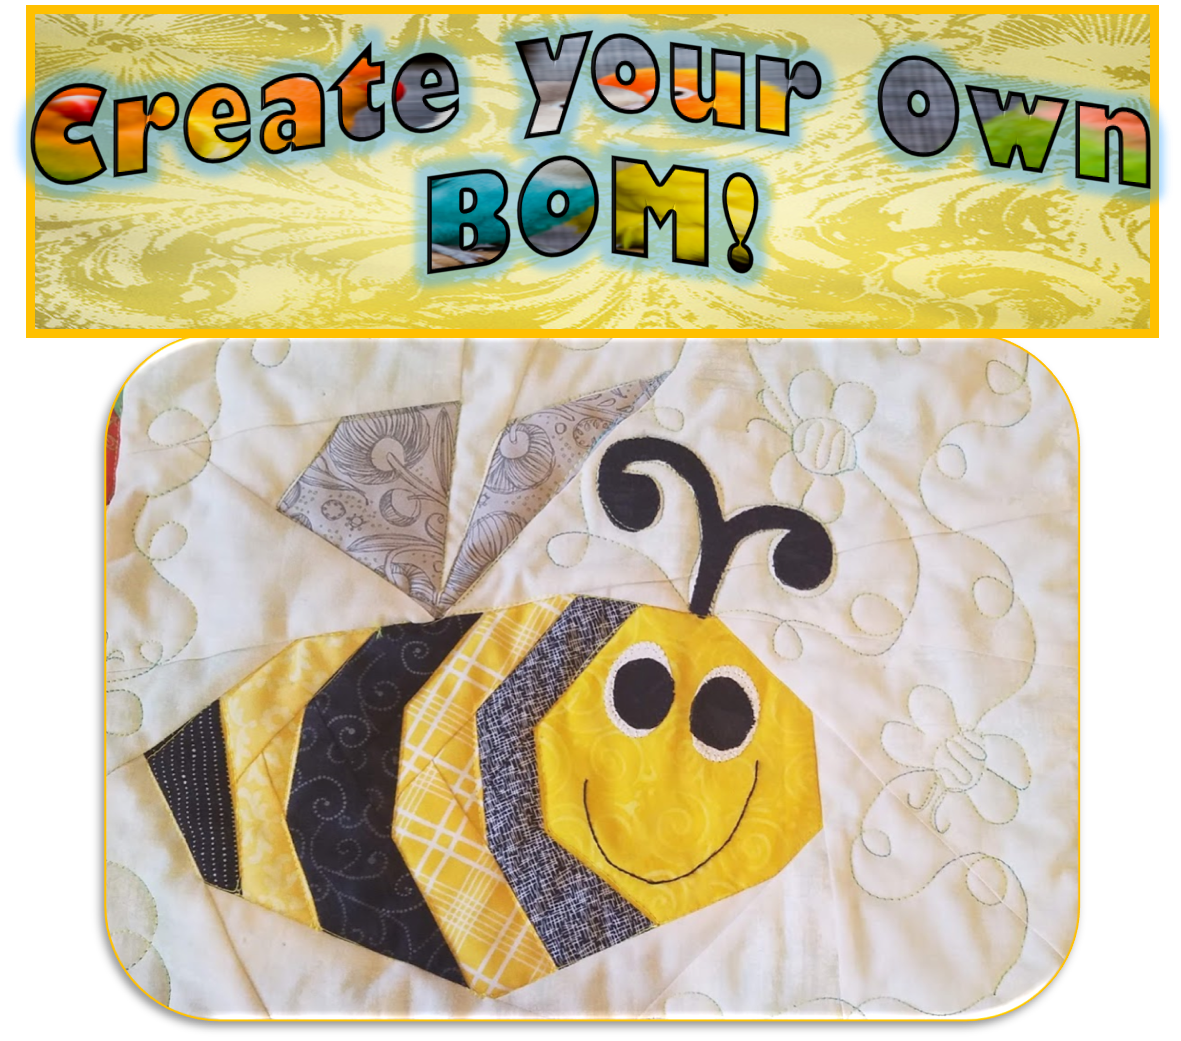 Create your Own BOM